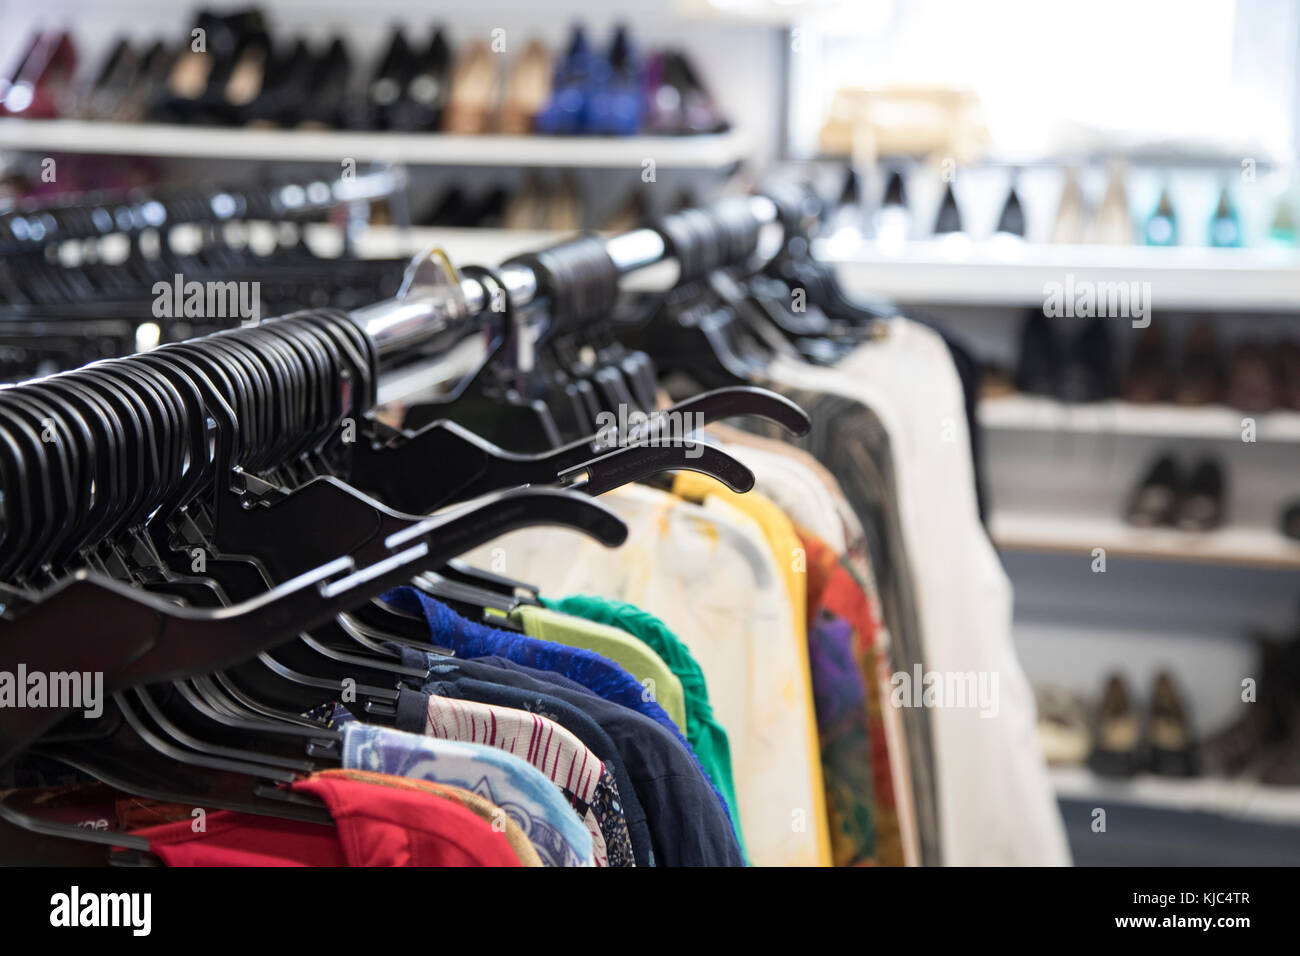 Clothing at Shopping Store - Stock Image